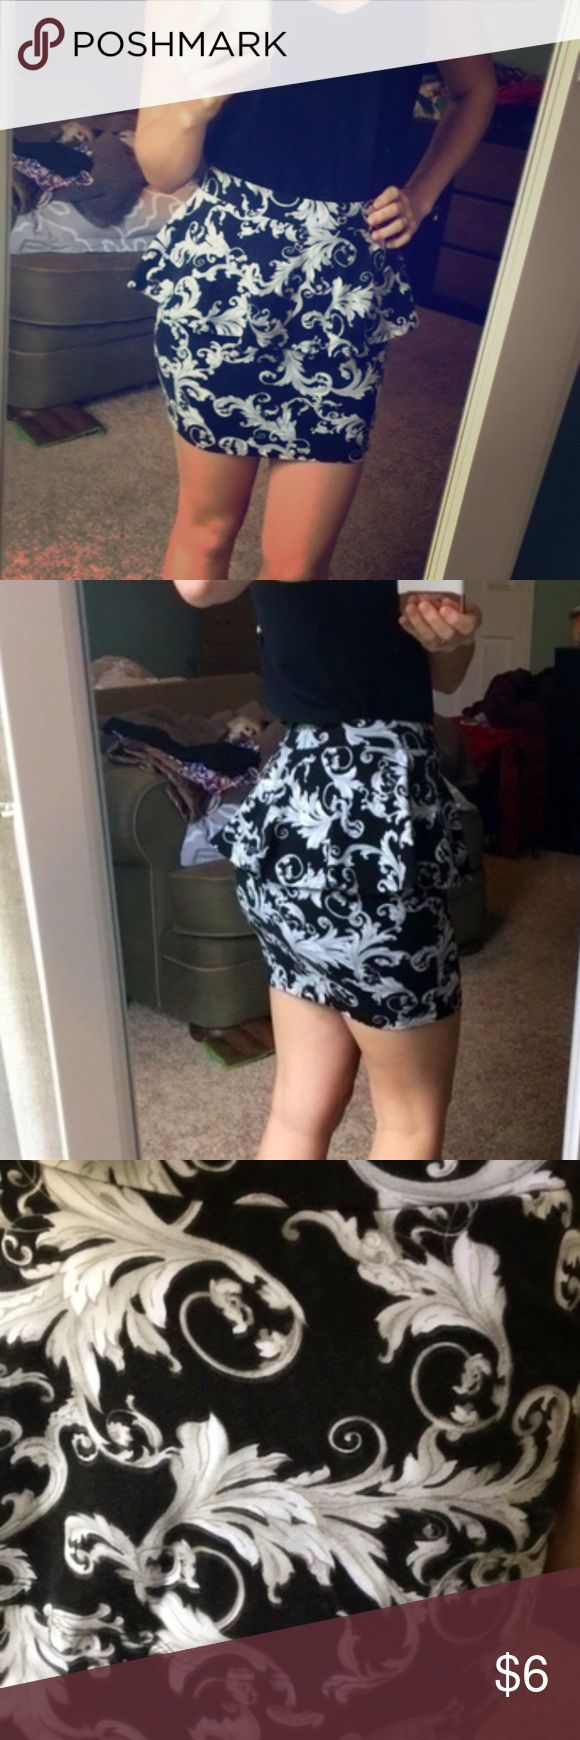 Black and white damask pattern peplum skirt Super cute form fitting damask pattern peplum skirt from forever 21. Great for nights out Forever 21 Skirts Mini